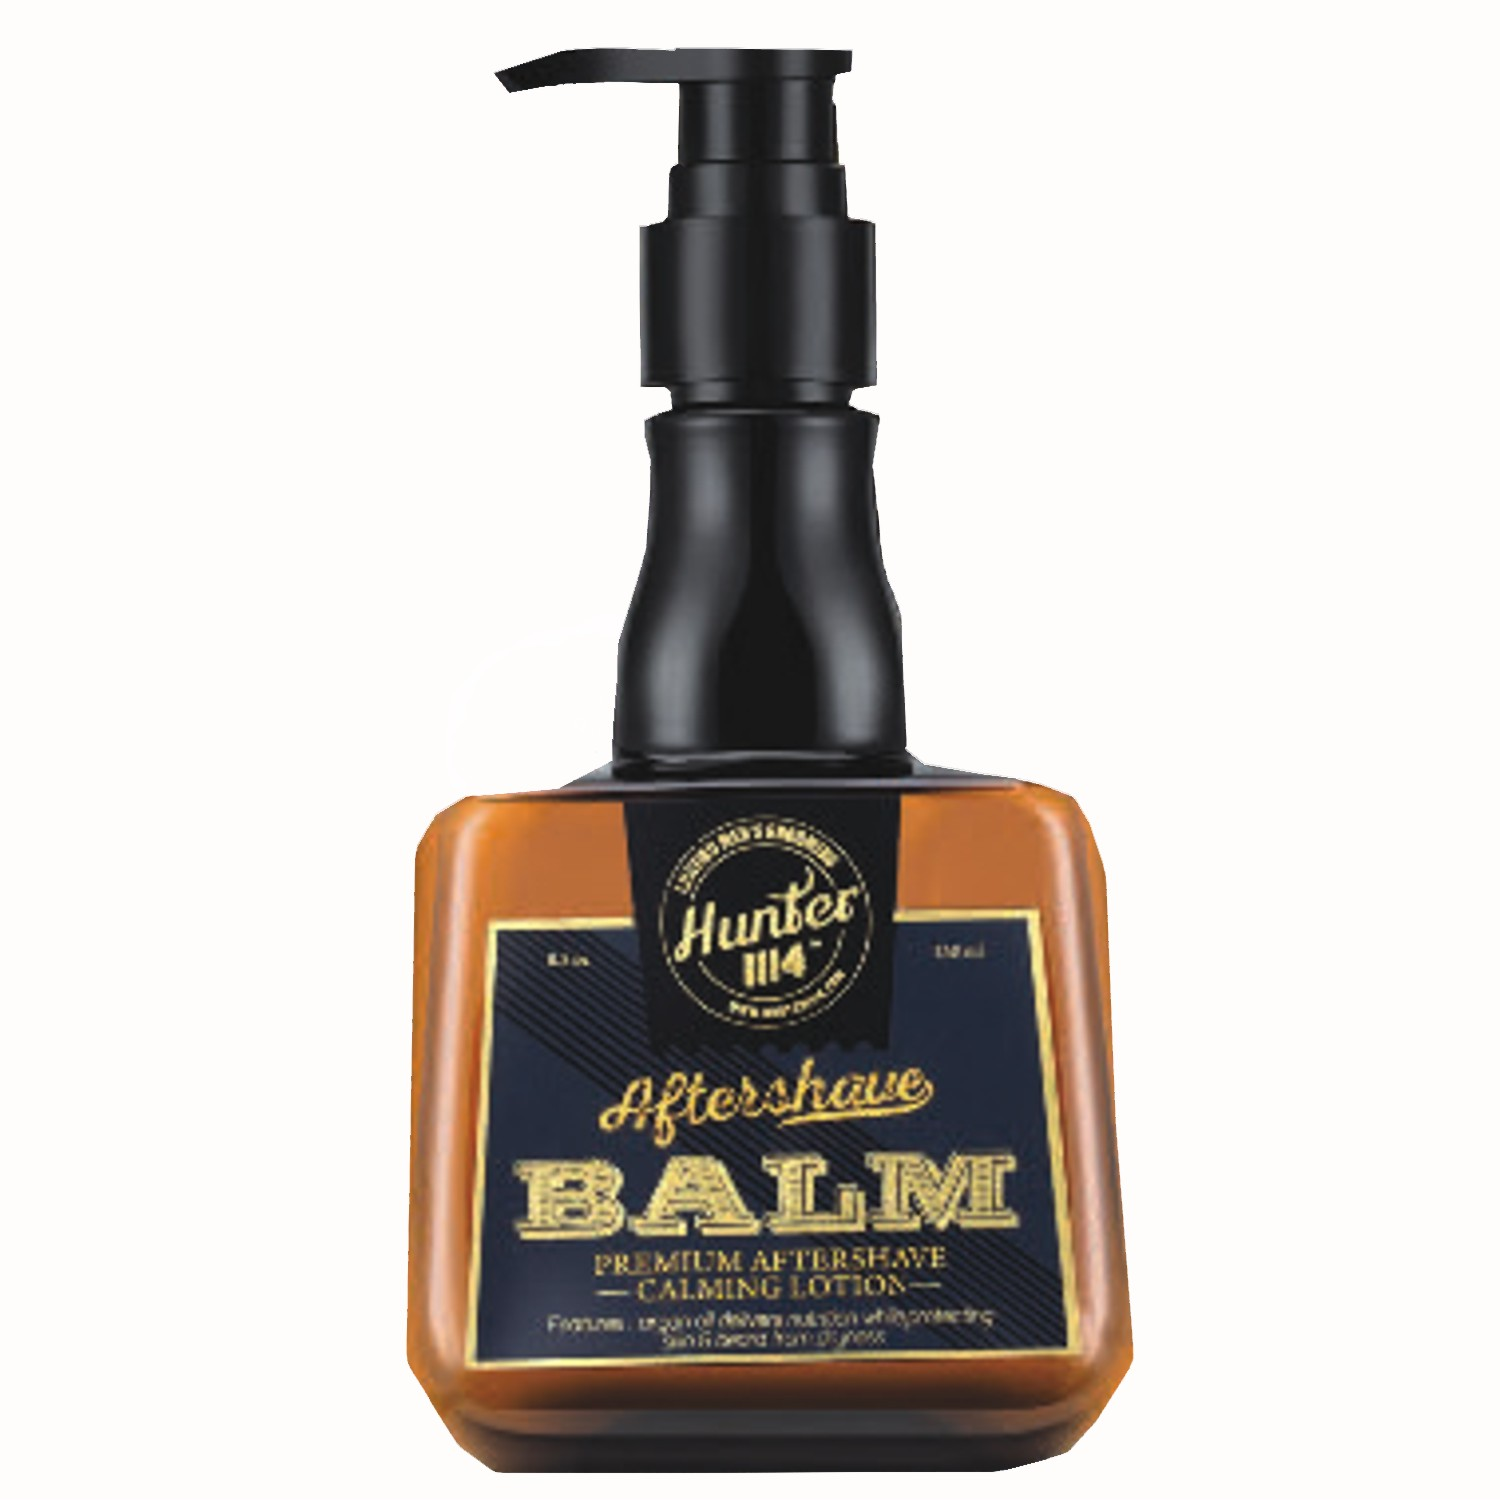 Hunter1114 After Shave Balm 250 ml